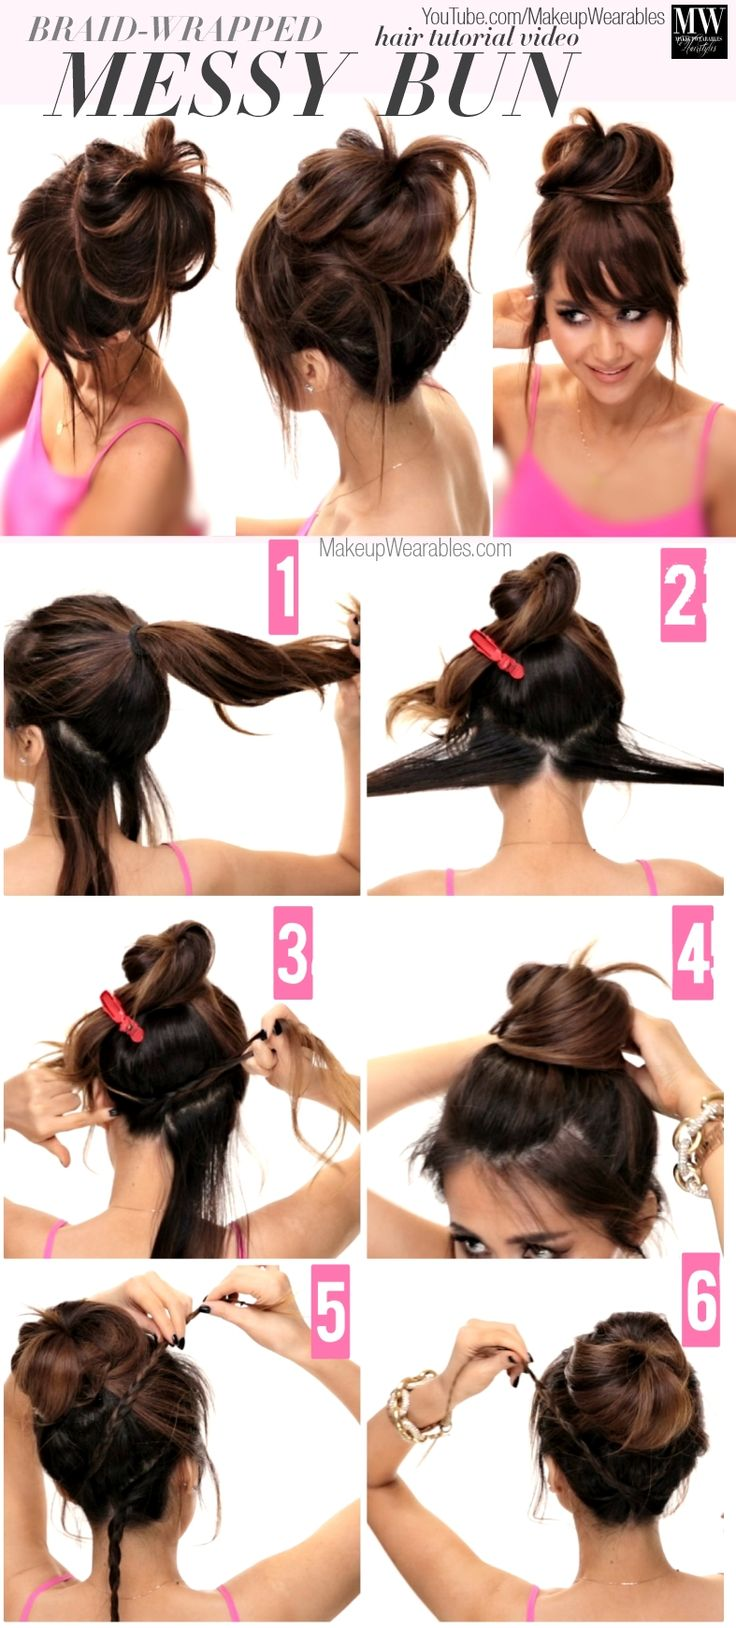 22 Easy Hairstyles for Girls with Tutorials - Pretty Designs